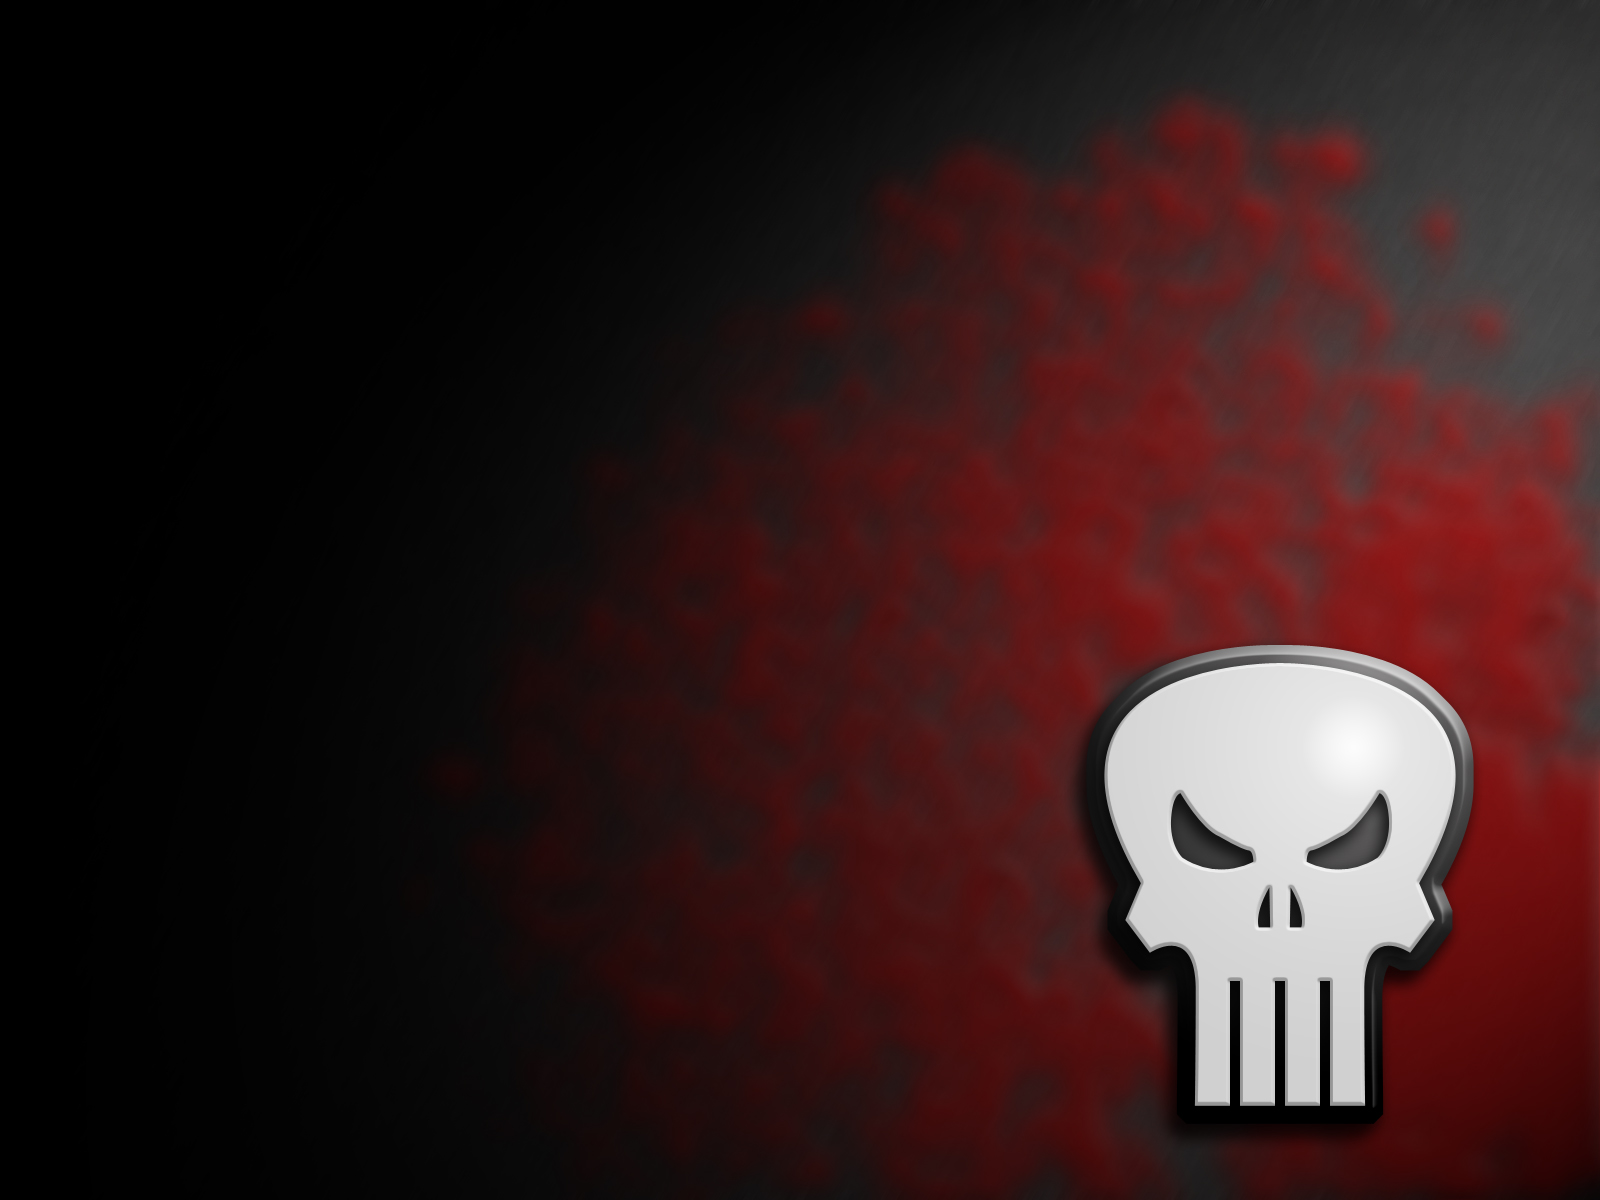 Punisher Wallpaper And Background Image 1600x1200 Id 240859